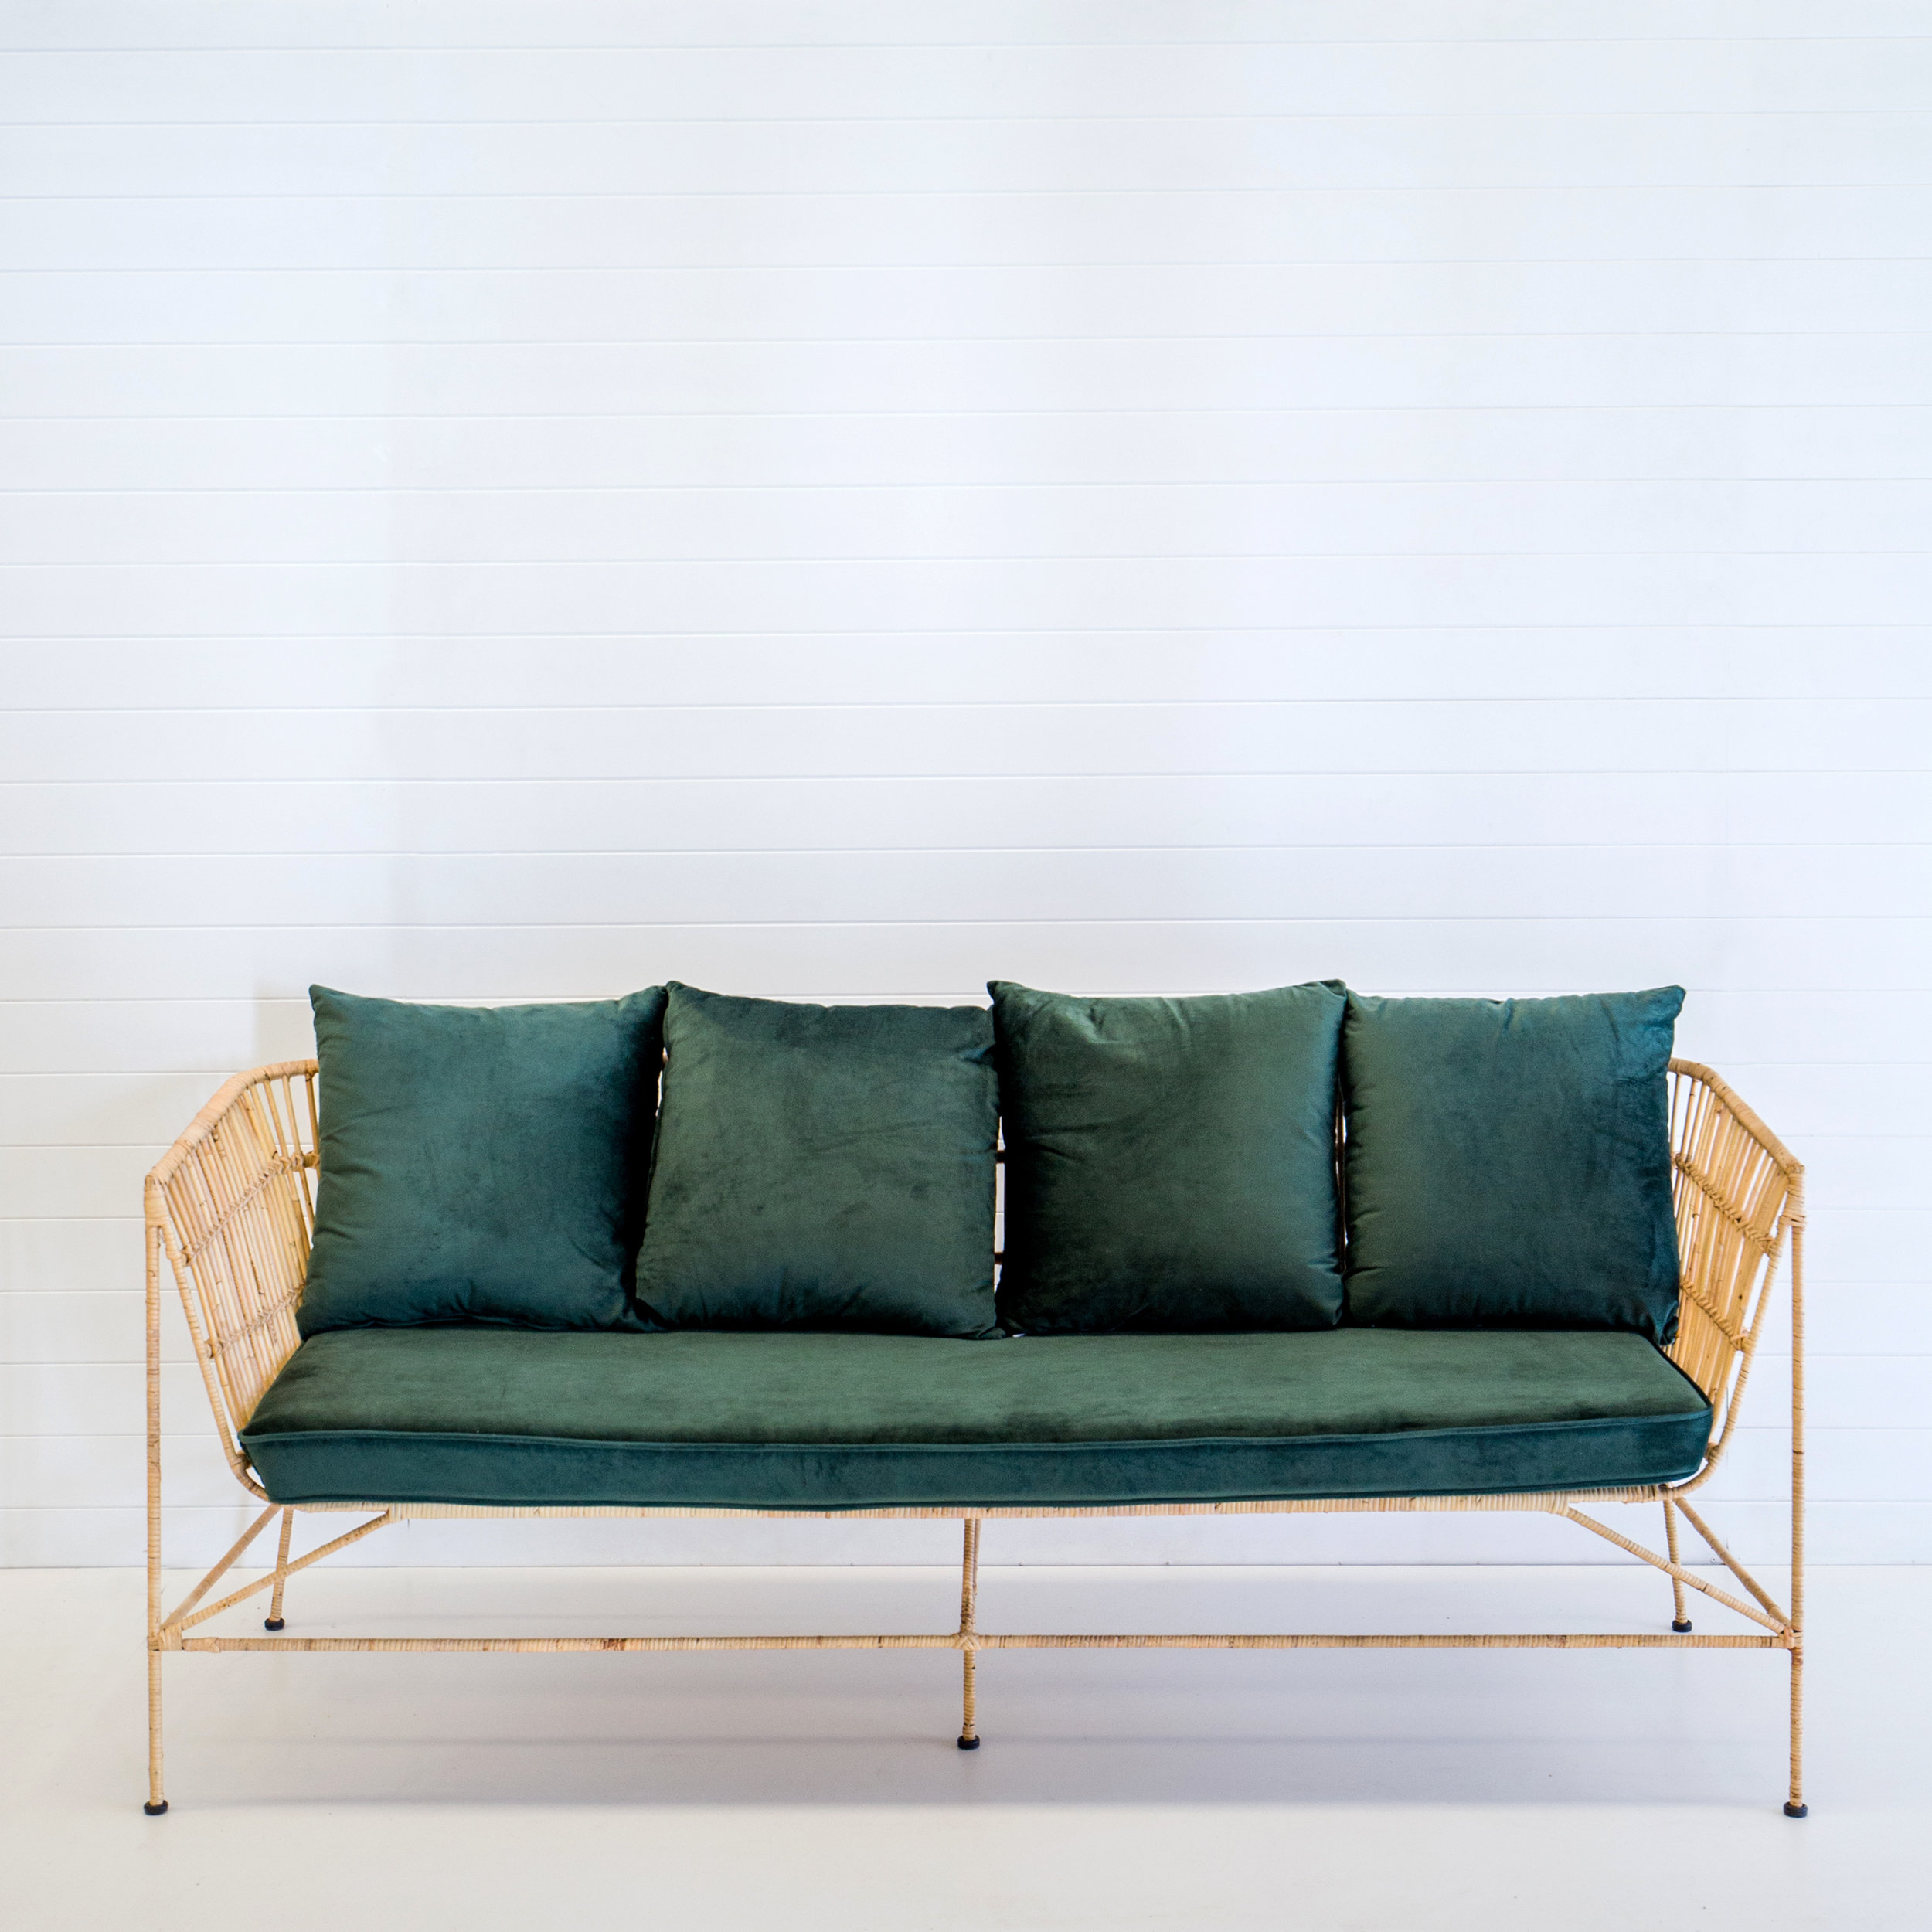 Indie natural 3-seater sofa with emerald velvet cushions